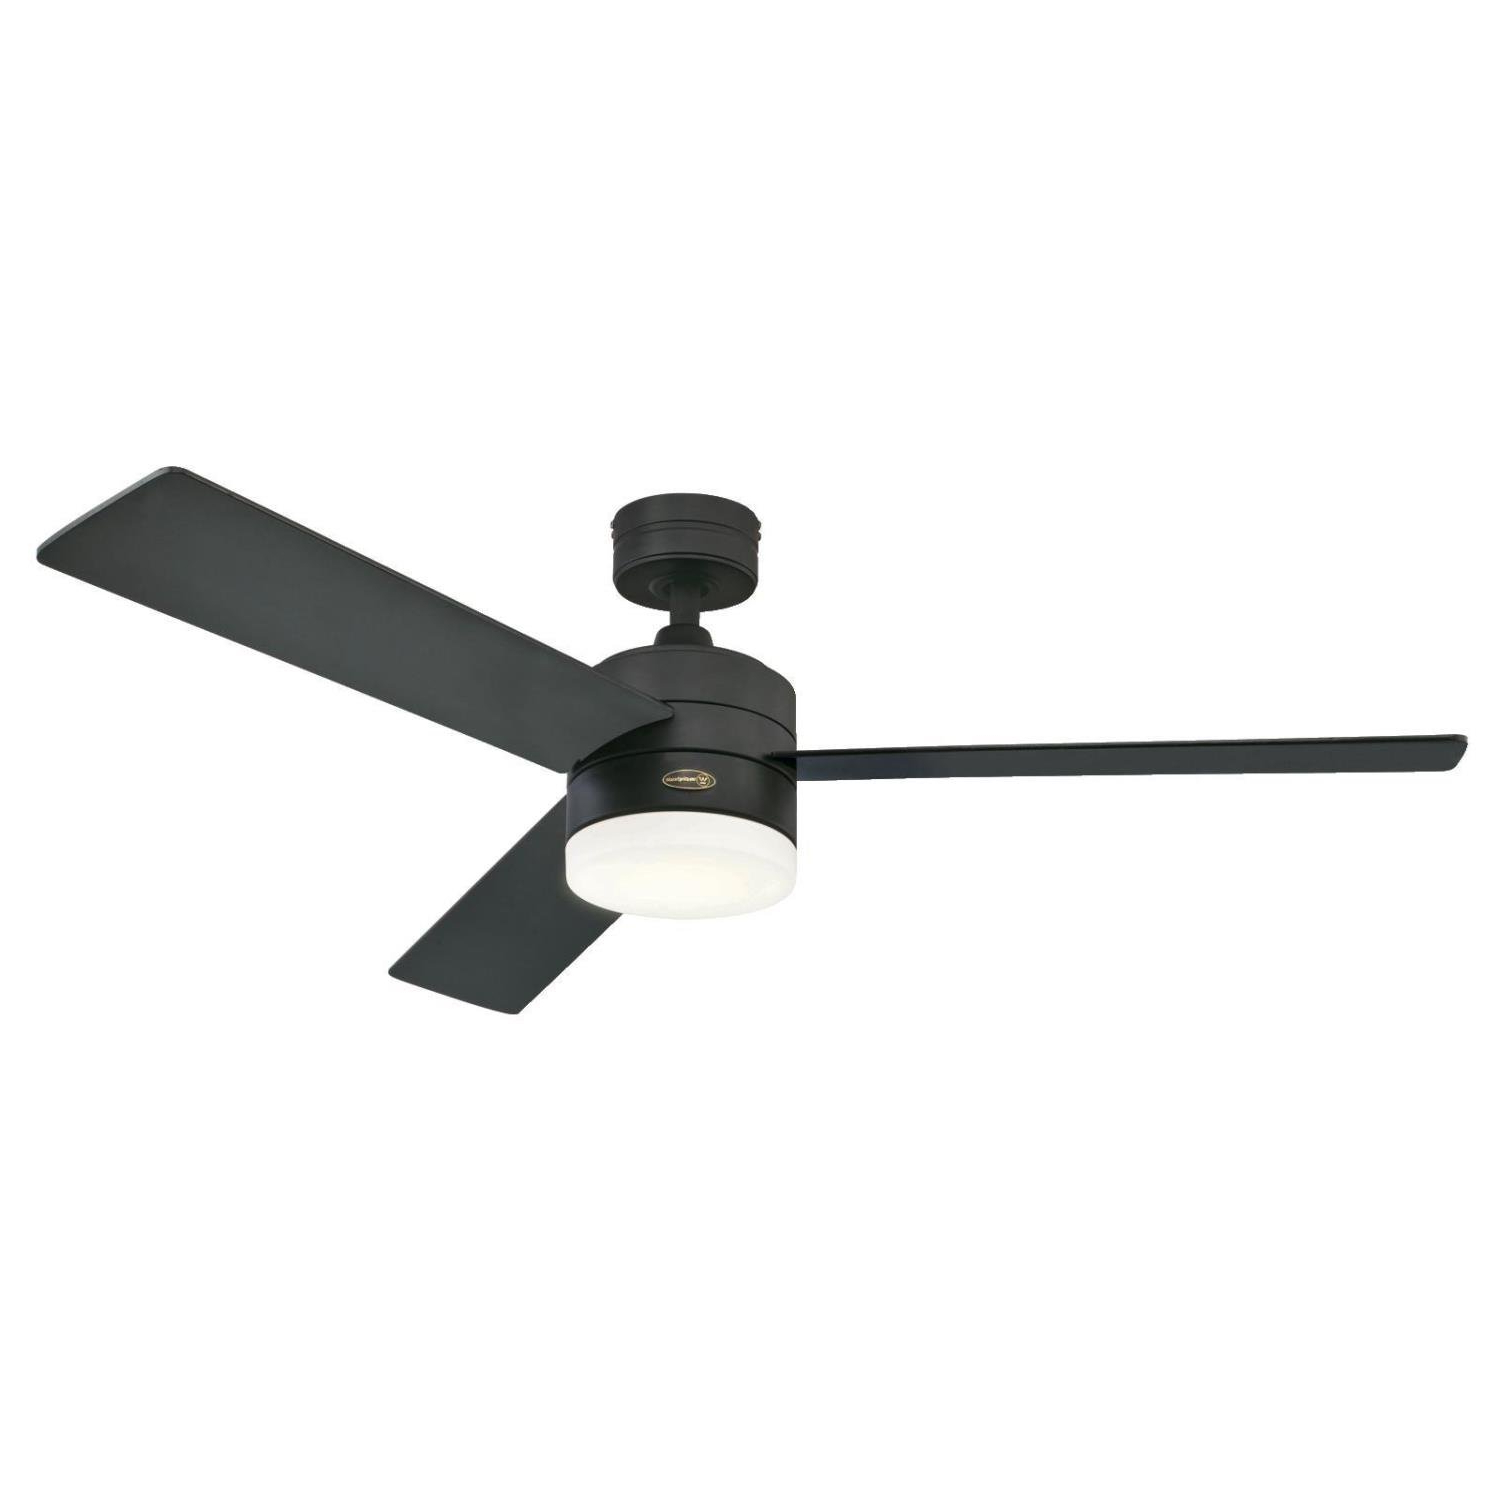 "Paige 3 Blade Led Ceiling Fans Regarding Famous 52"" Luray 3 Blade Led Ceiling Fan With Remote, Light Kit Included (View 13 of 20)"